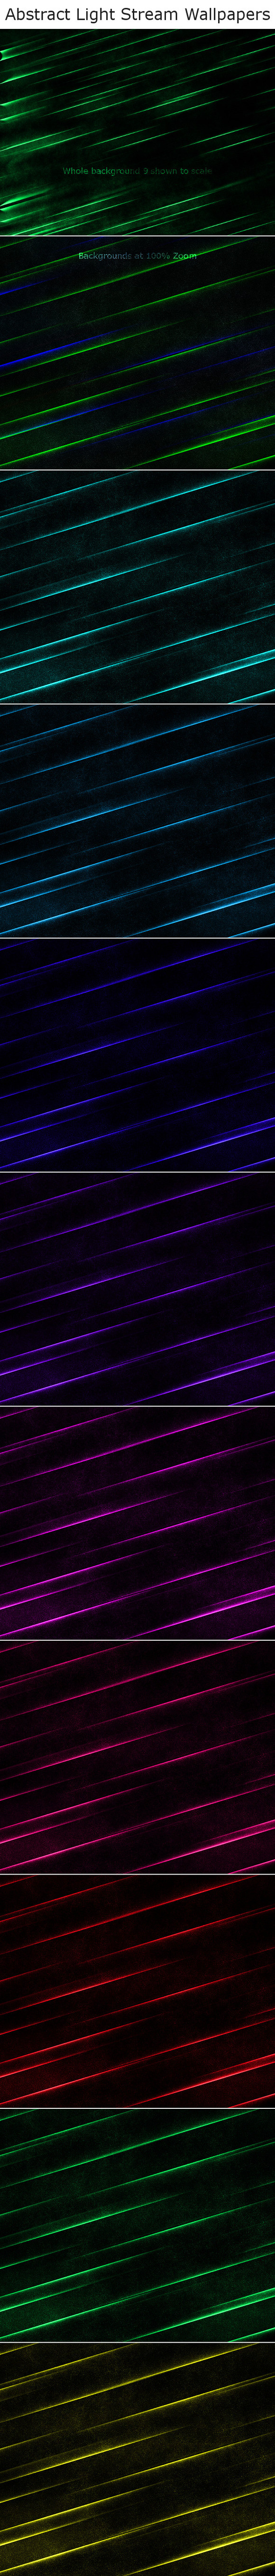 Abstract Light Stream Wallpapers